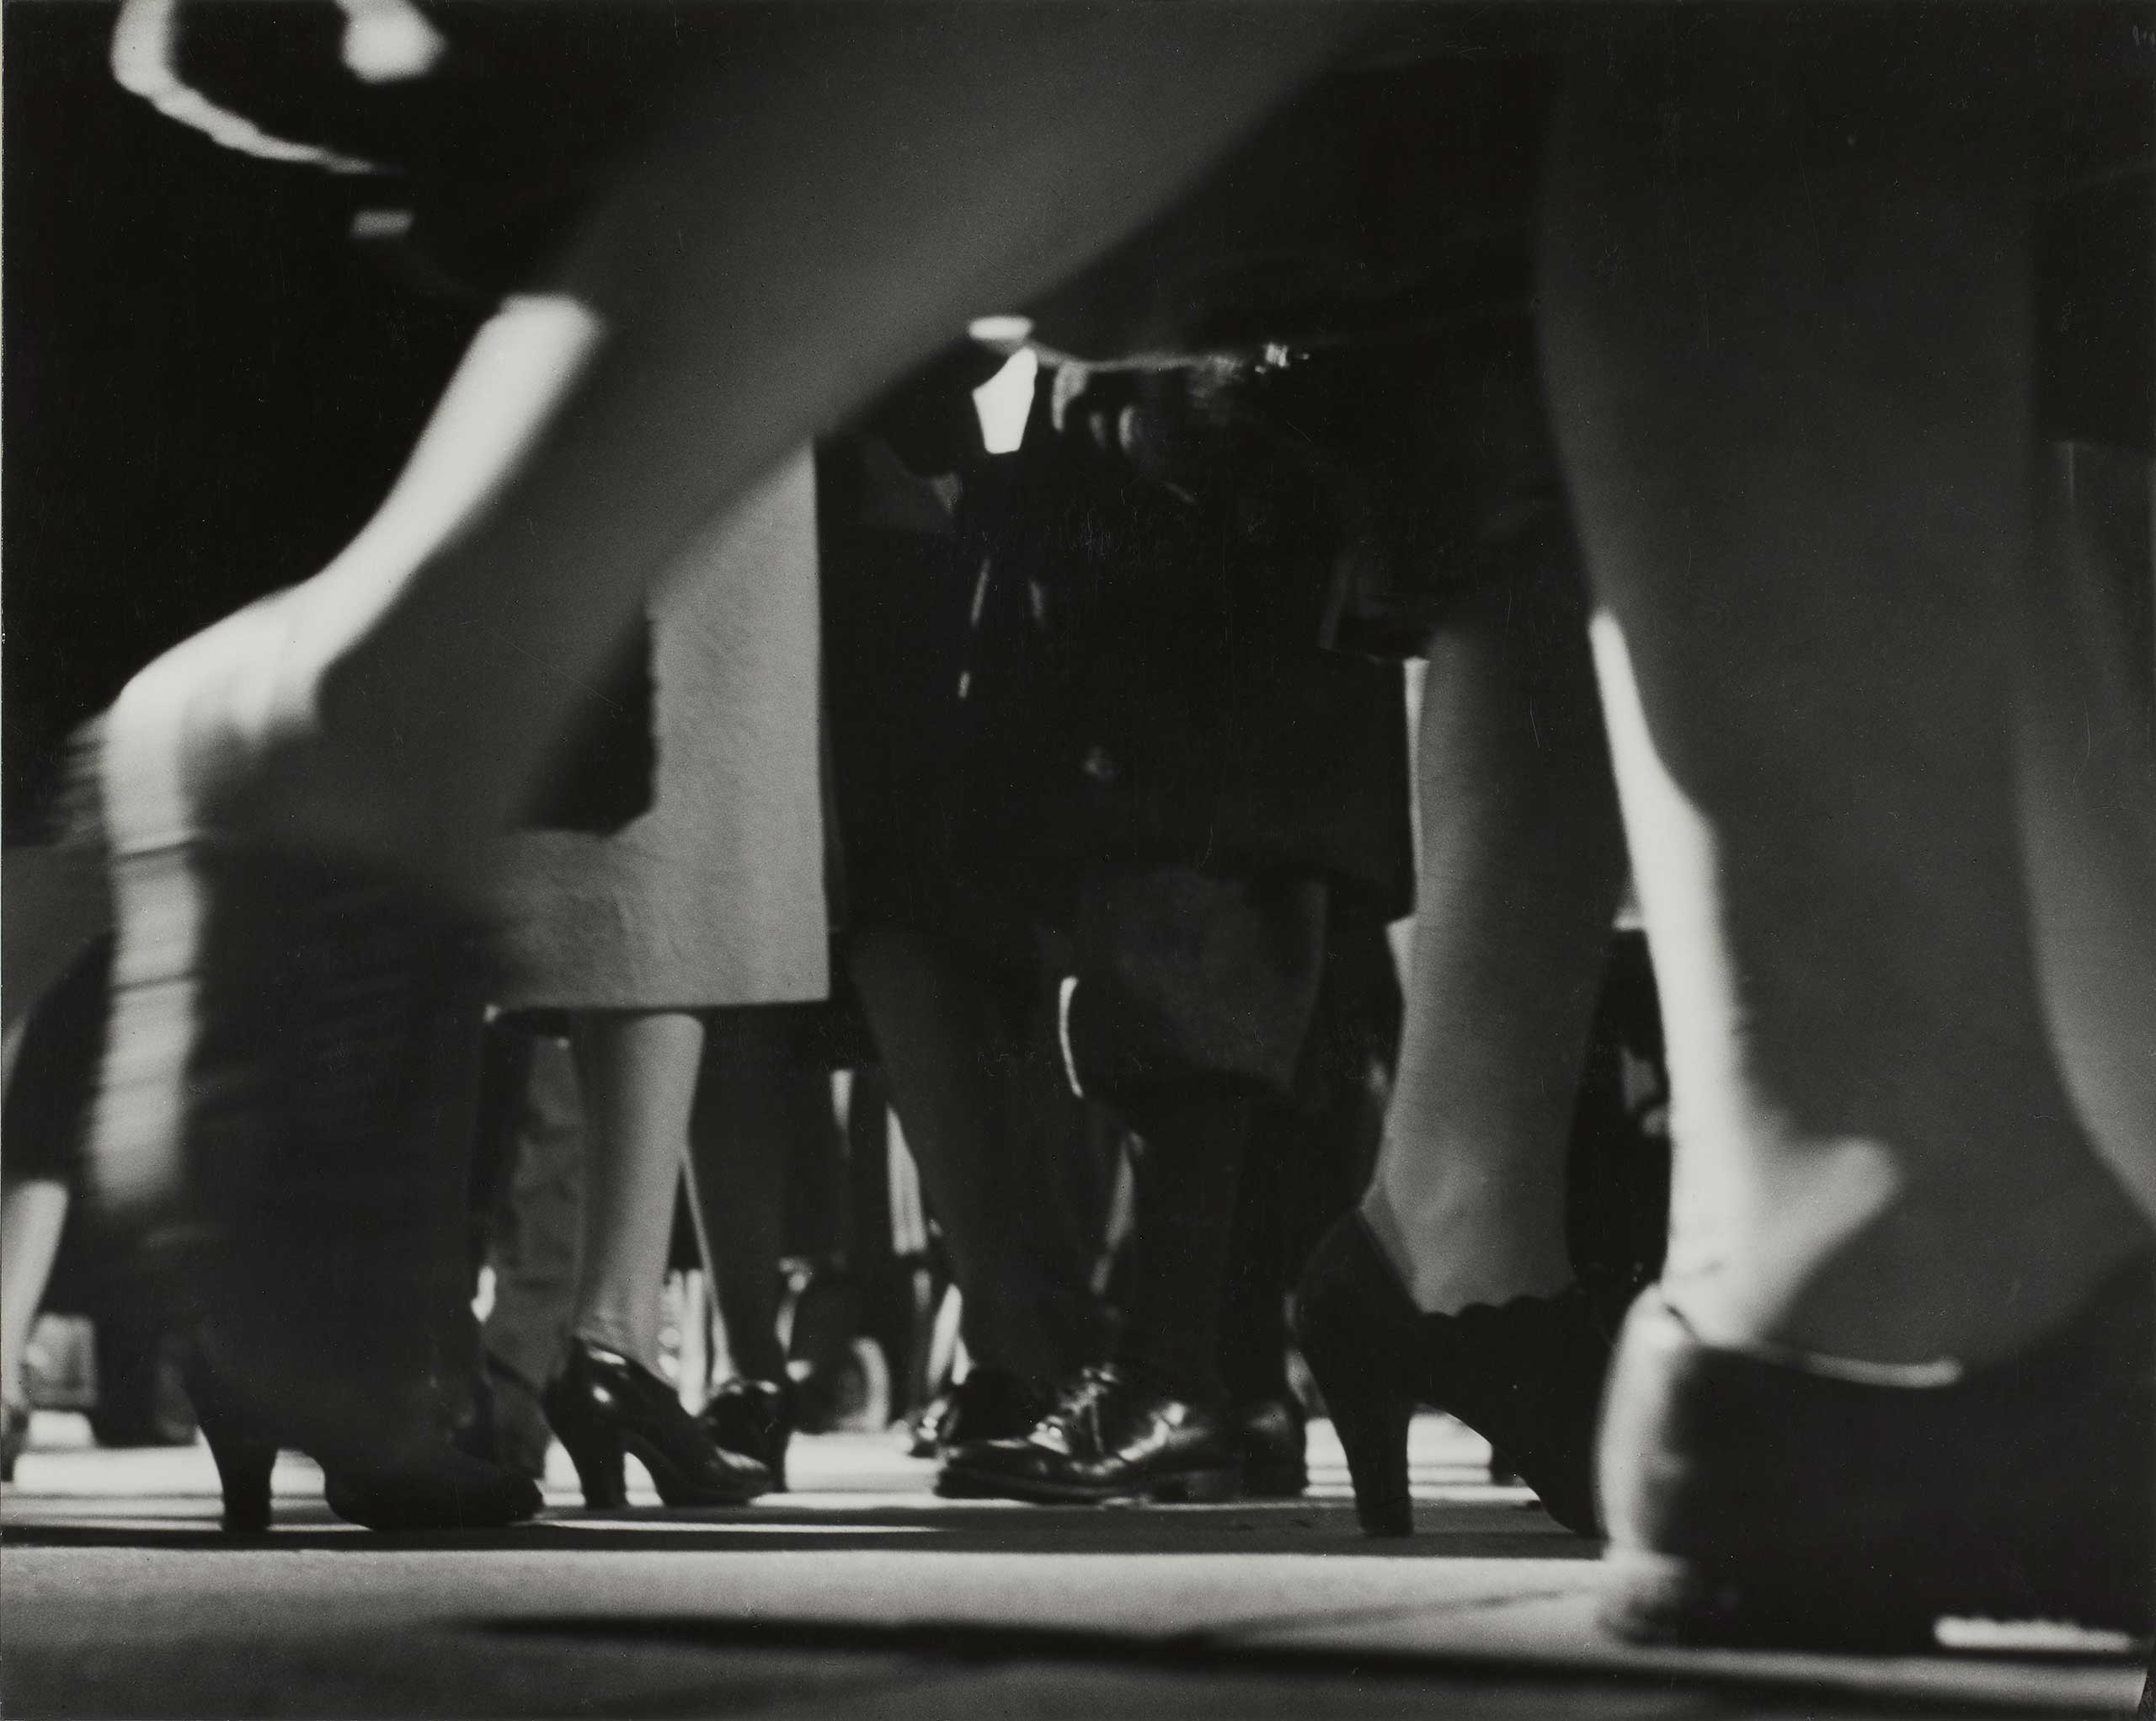 The Thrill of the Chase: The Wagstaff Collection of Photographs at the J.Paul Getty Museum, Wadsworth Atheneum Museum of Art, Conn.: Sept. 10 - Dec. 11                                                                                             (Caption: Running Legs, Forty-second Street, New York, 1940-41)